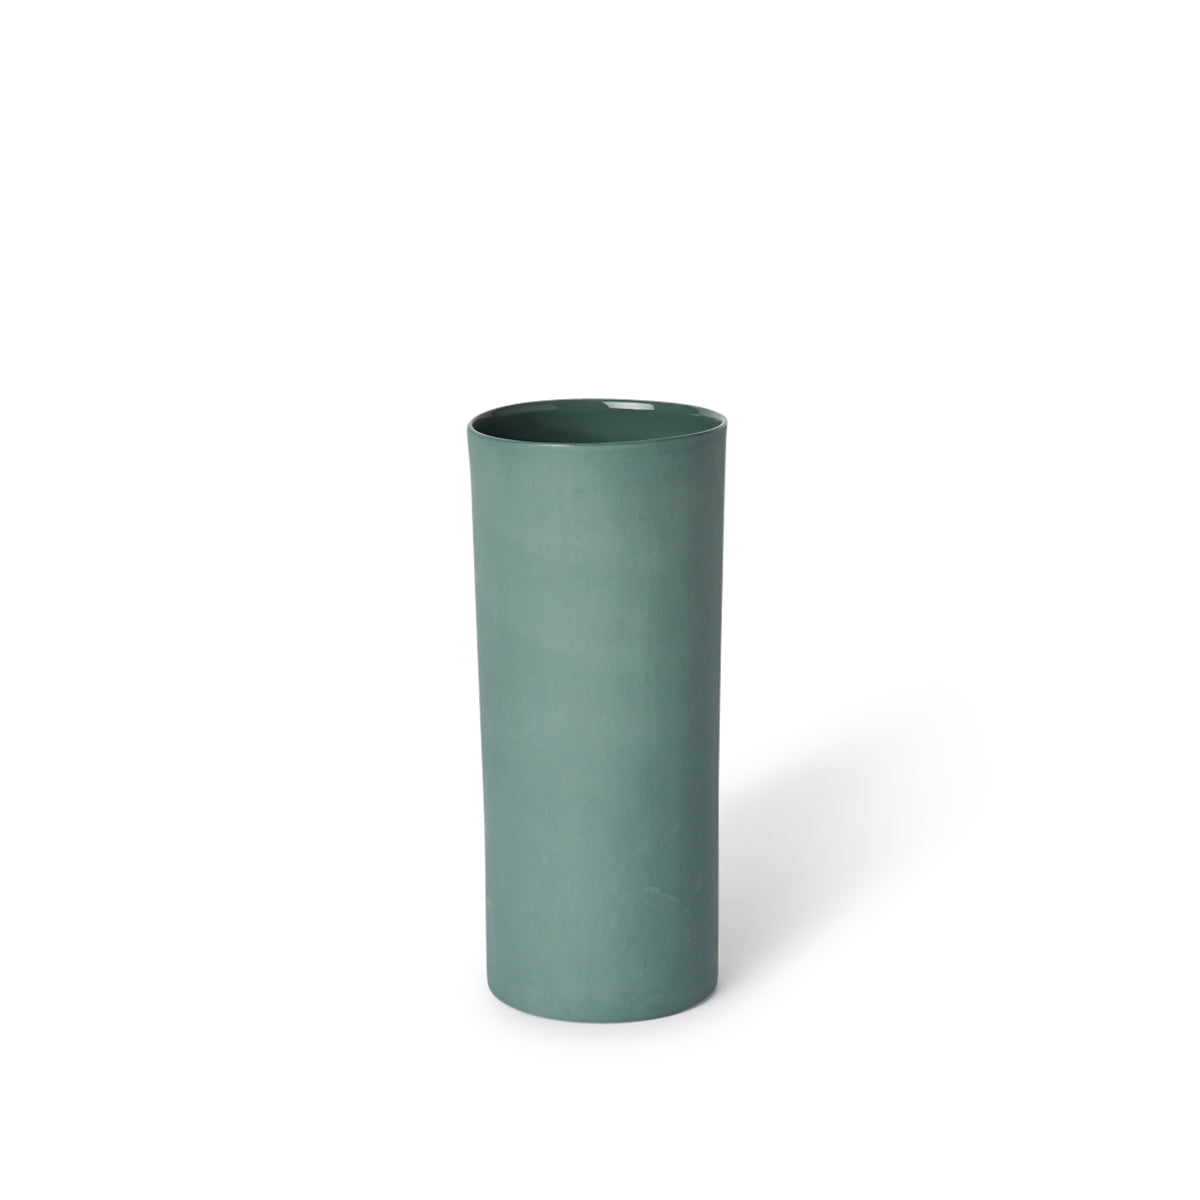 Round Vase Medium Bottle Green